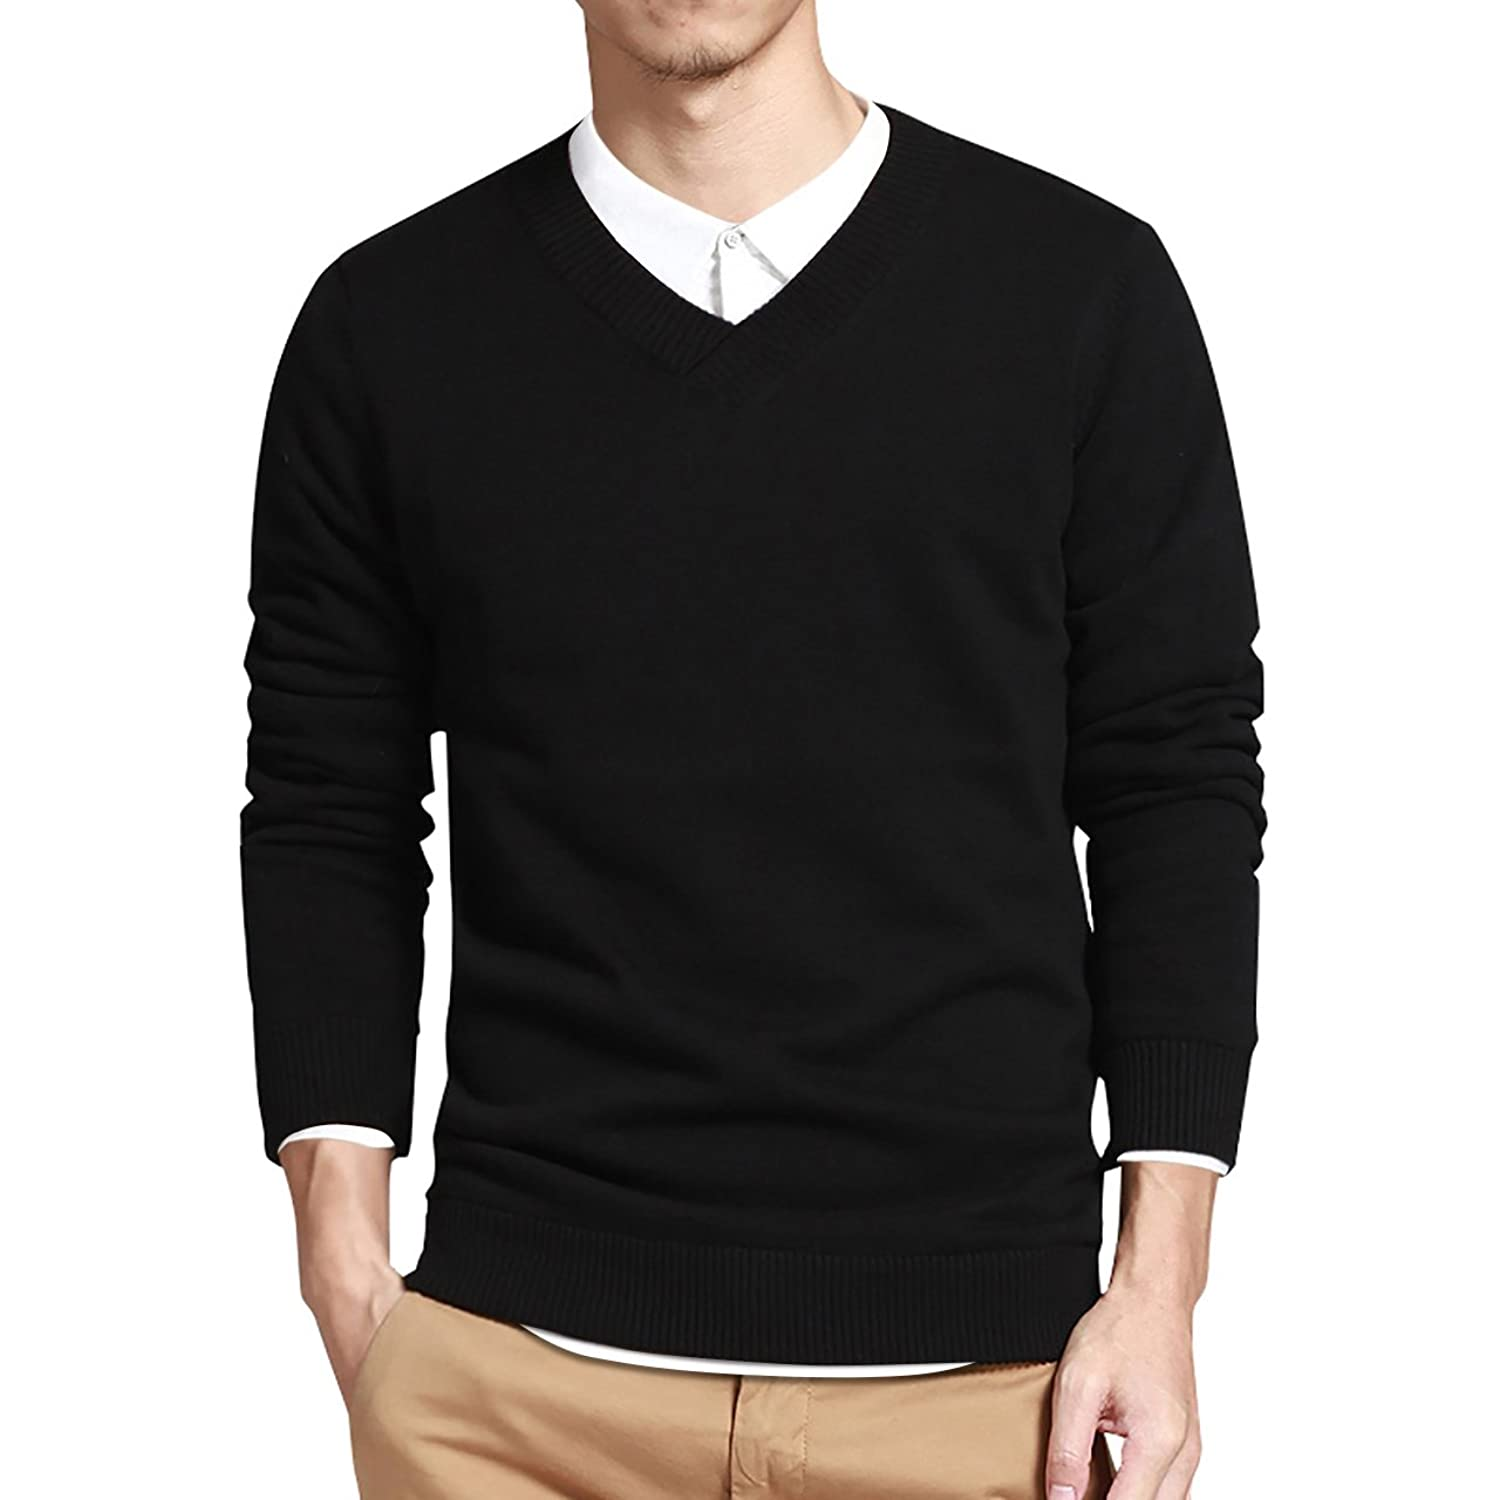 Amazon Best Sellers: Best Men's Pullover Sweaters